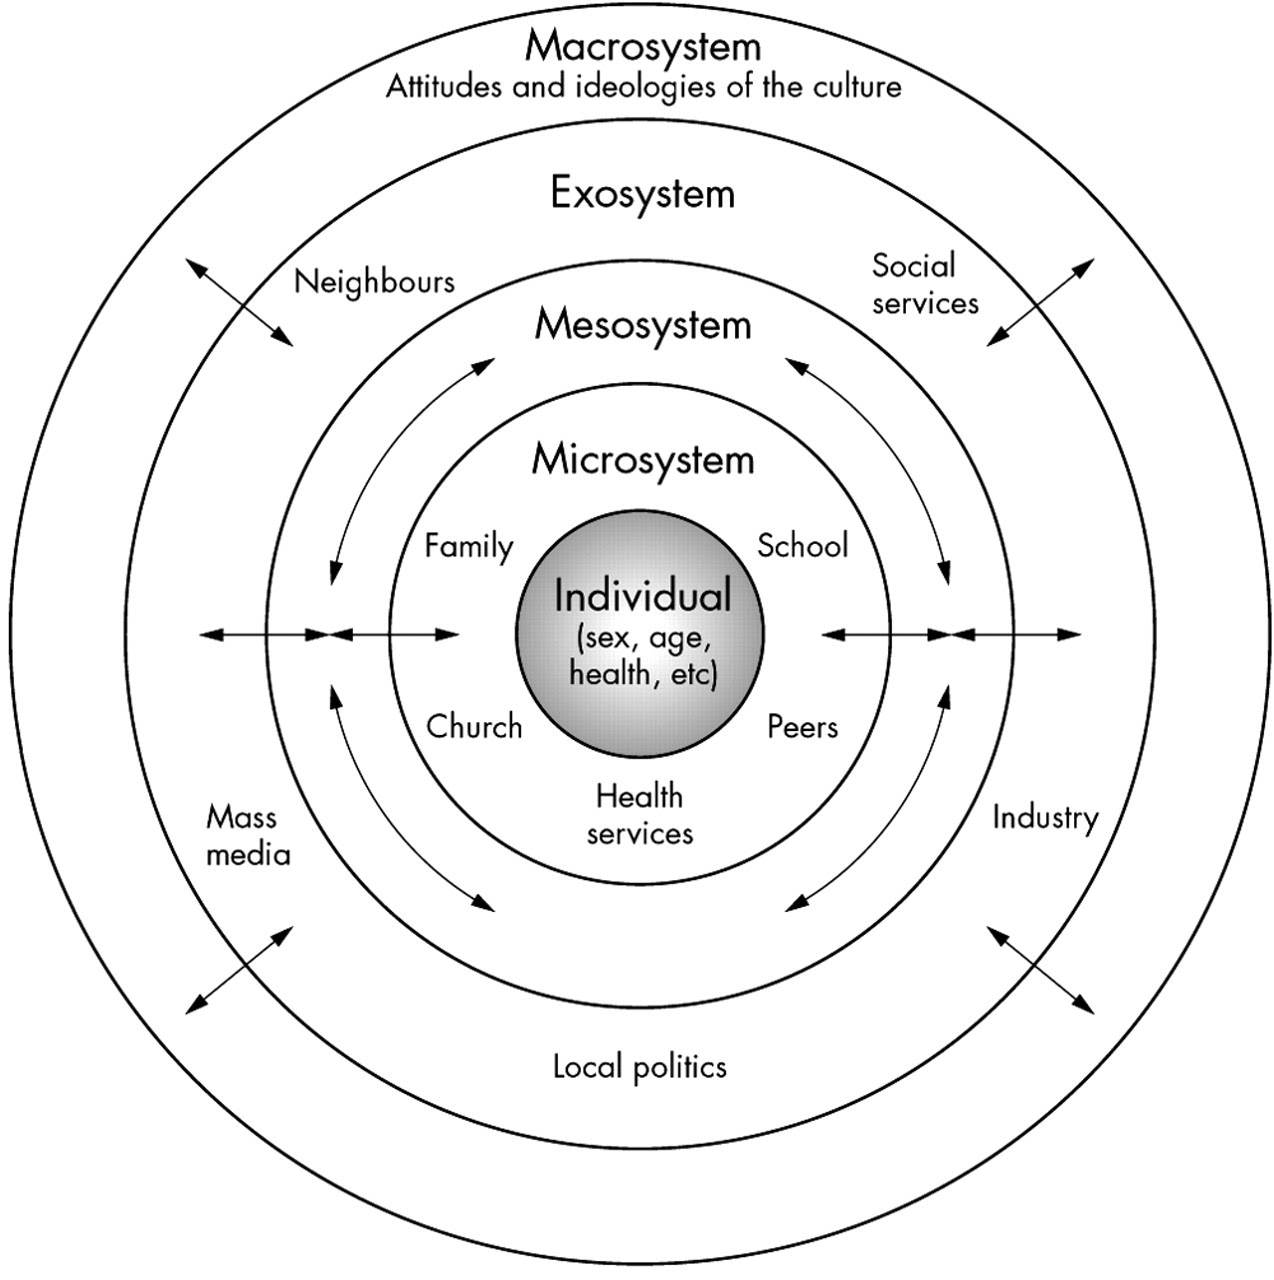 bronfenbrenner ecological systems theory (witt & mossler, 2010, urie bronfenbrenner and ecological theory para 1) the ecological theory is made up of 5 systems, microsystem, mesosystem, exosystem, and chronosystem family, according to ecological theory, is a part of the microsystem my family has been the most influential part of my development.